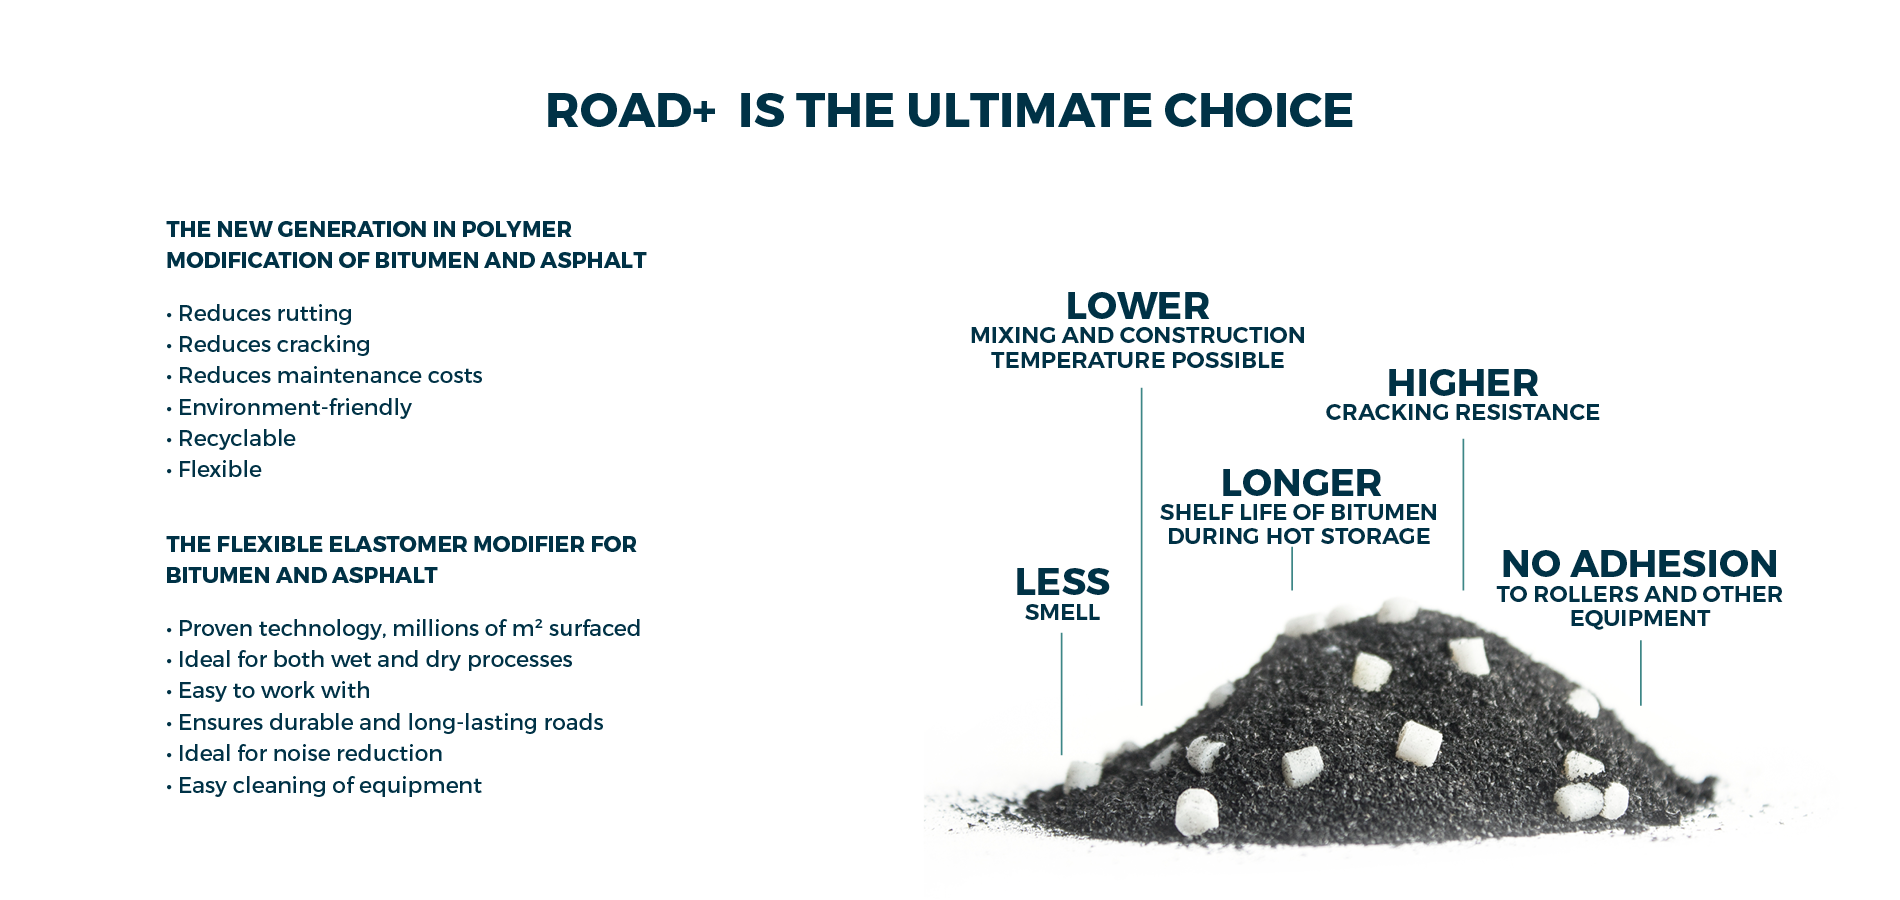 Rubber modification of asphalt with Genan (Road+)